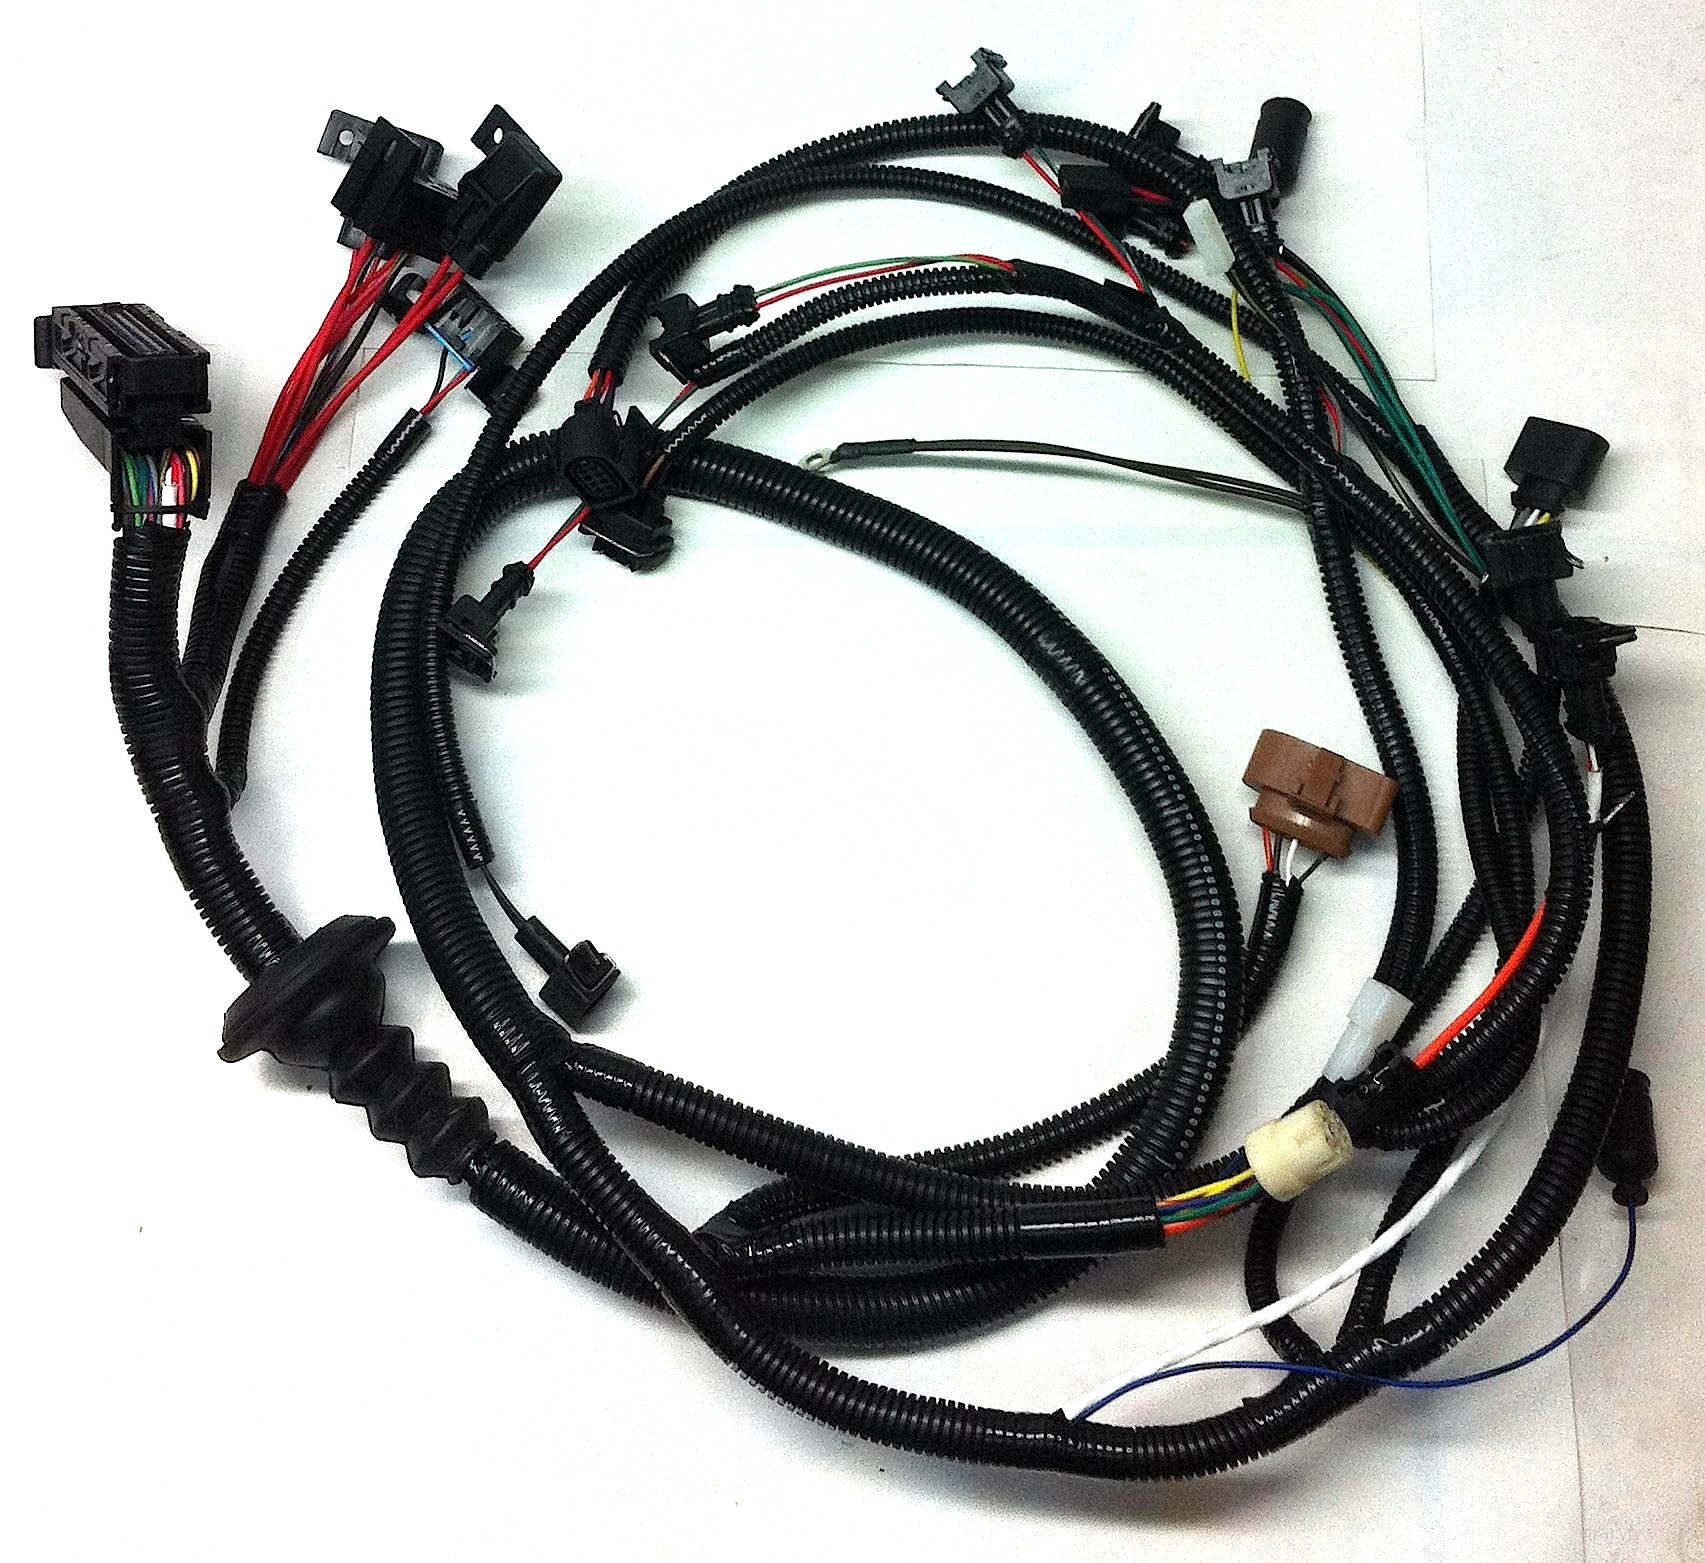 2lr tiico conversion wiring harness foreign auto supply inc rh foreignautosupply com Automotive Wire Harness Manufacturers USA Automotive Wiring Harness Connectors